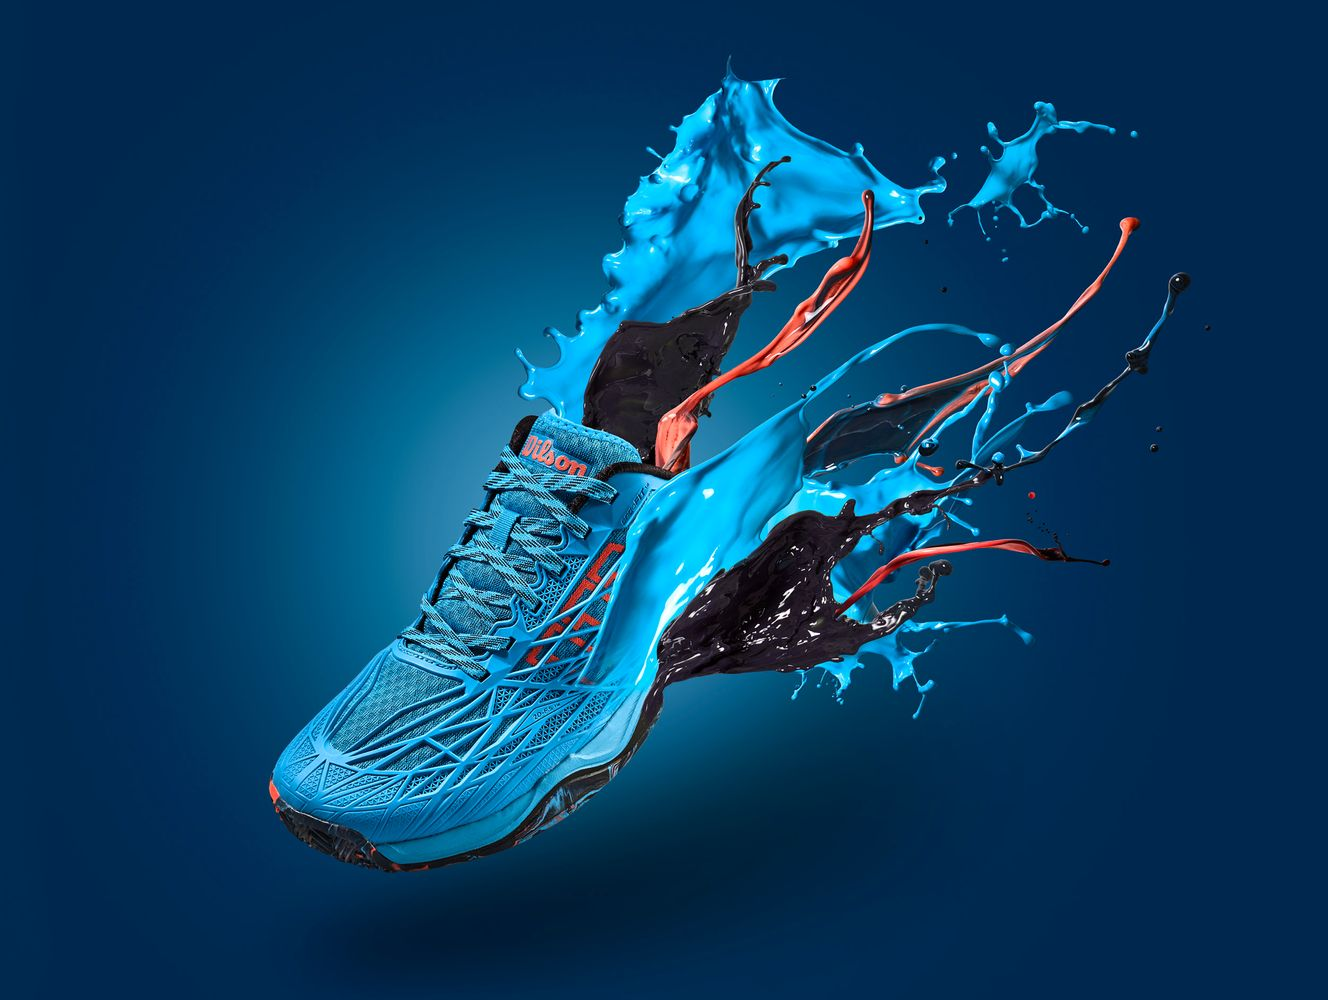 asics with paint